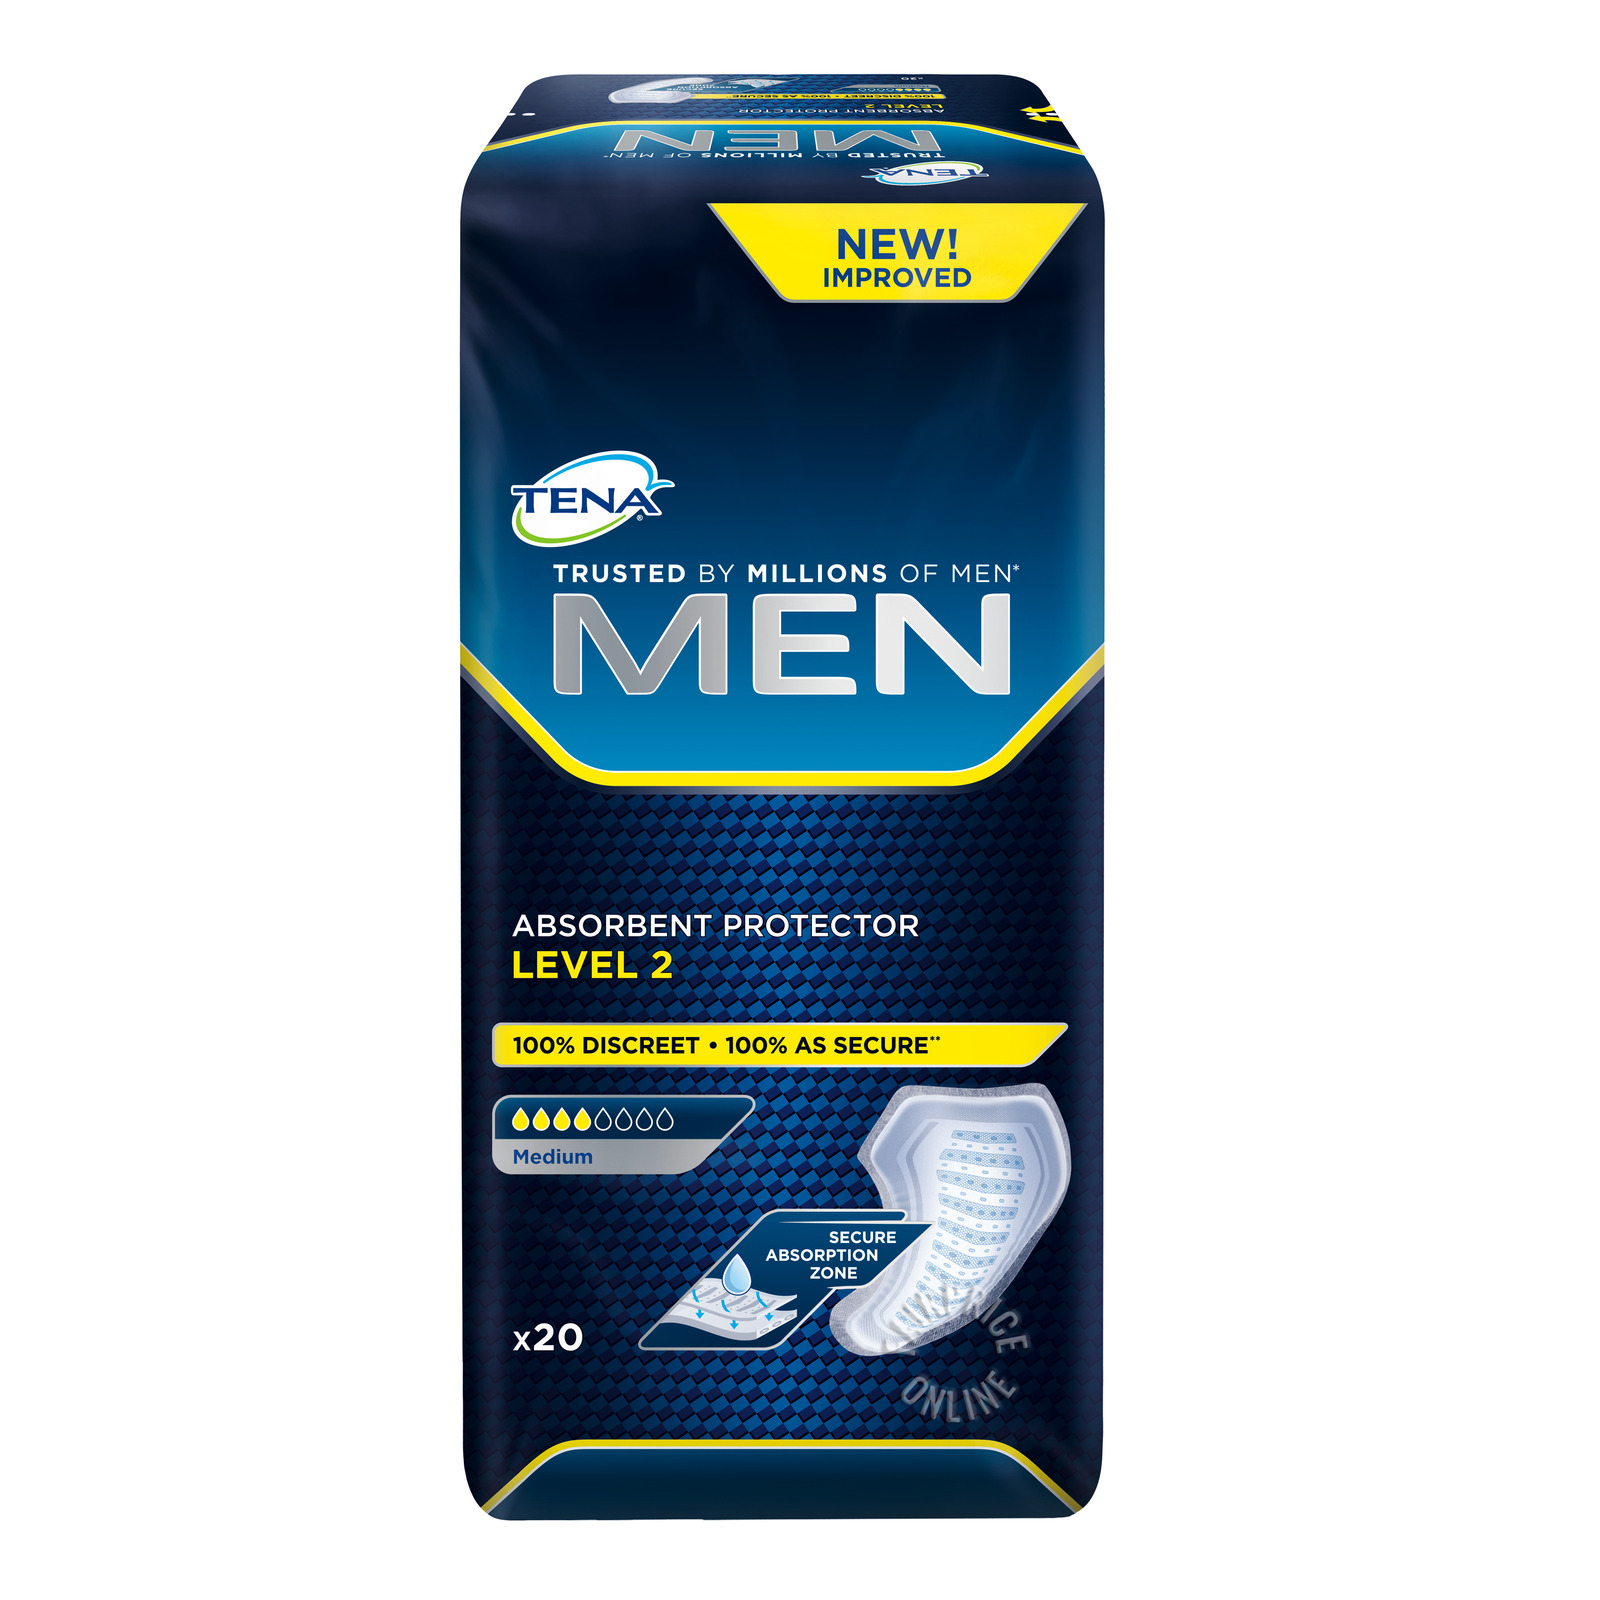 TENA Men Absorbant Protector Pads - Level 2 (M)